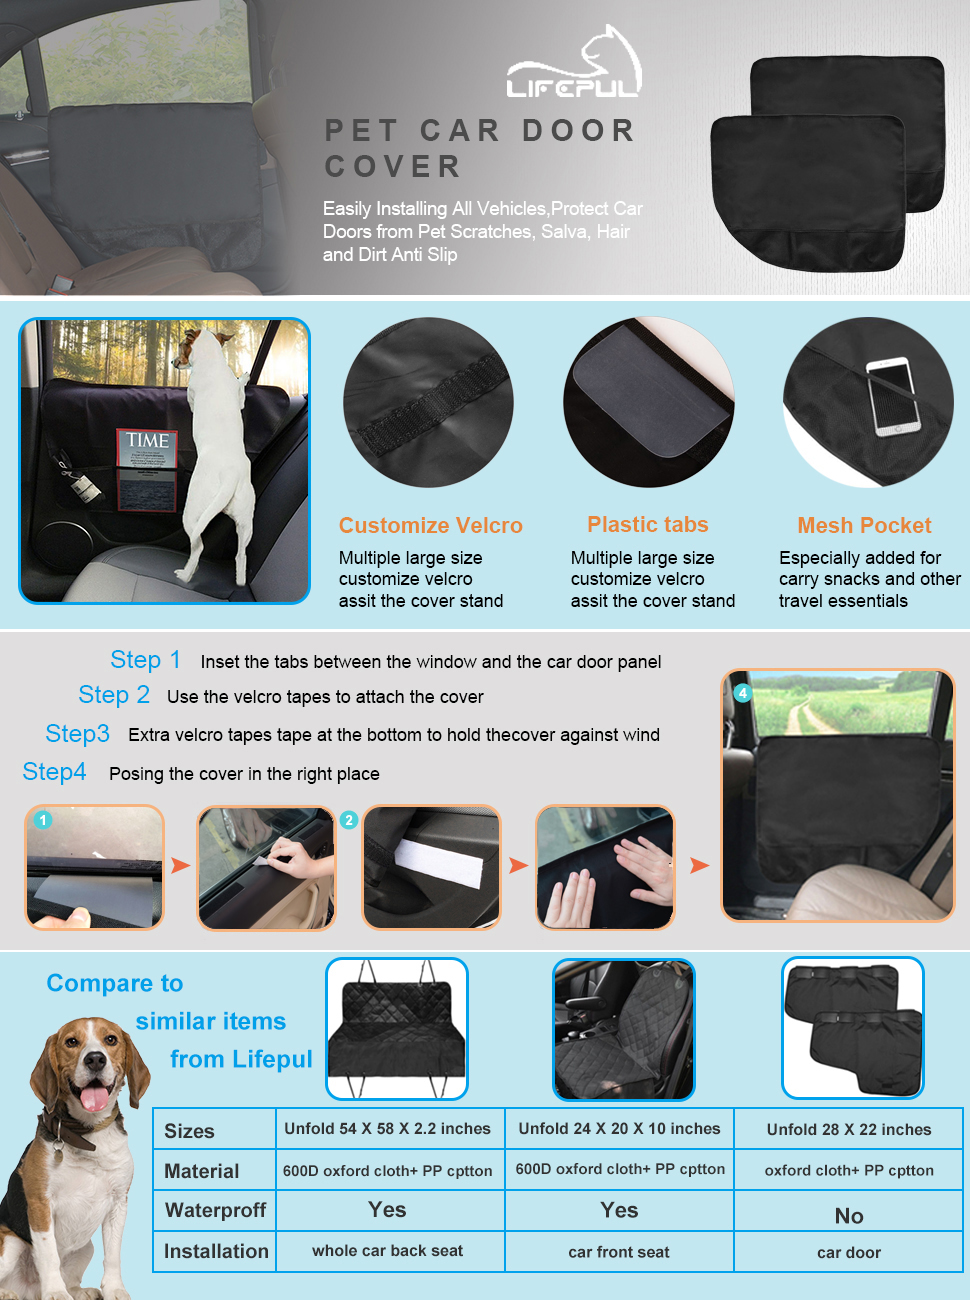 Lifepul Pet Car Door Cover, Door Protector Cover Universal for Easily  Installing All Vehicles, Protect Car Interior & Doors from Pet Scratches,  Hair